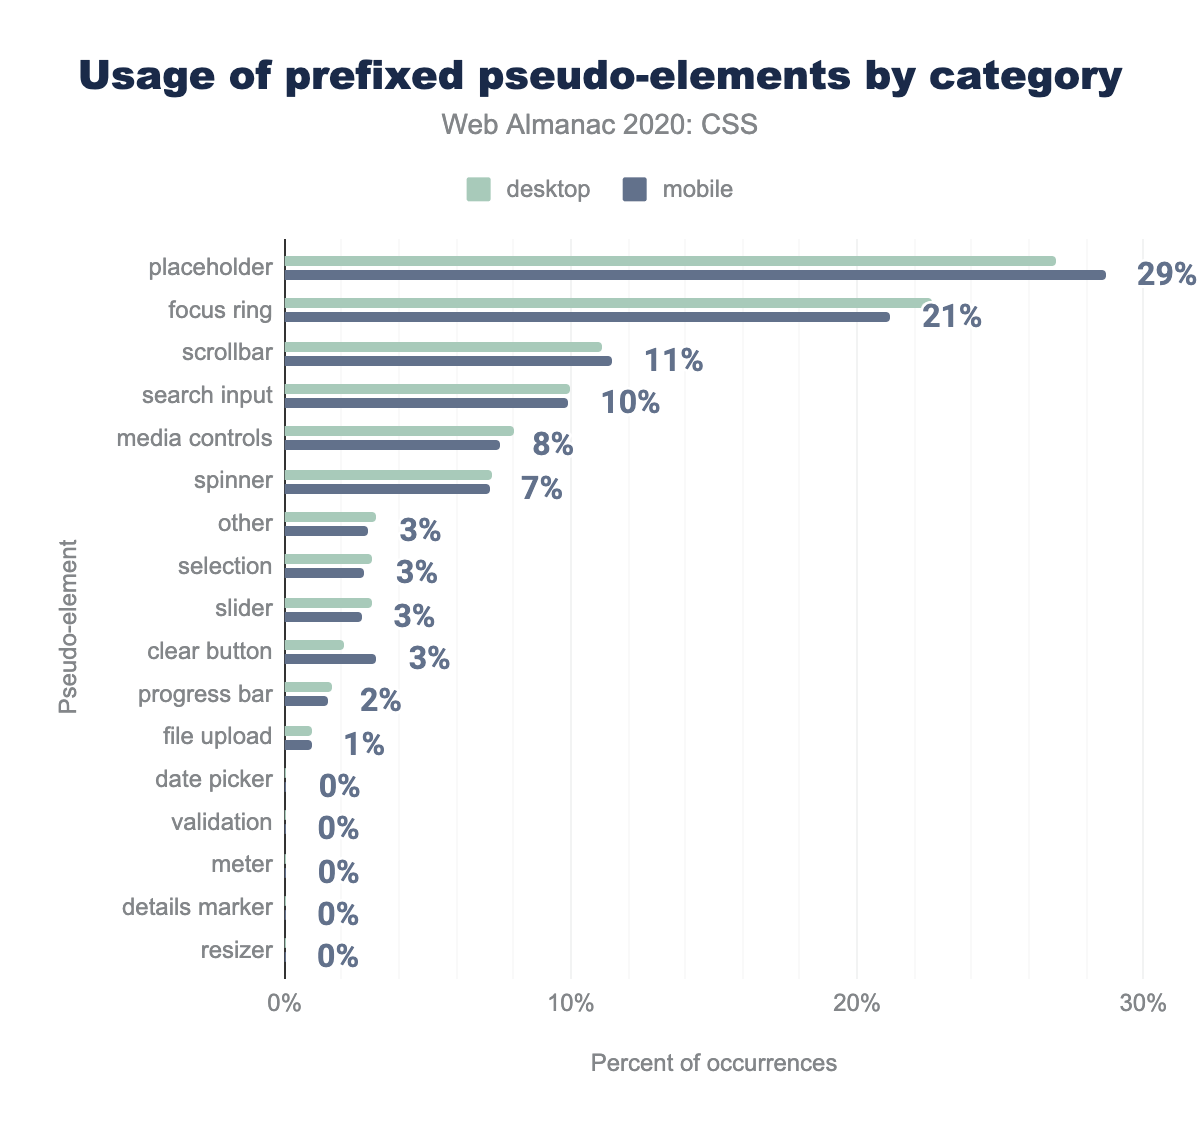 Usage of prefixed pseudo-elements by category.